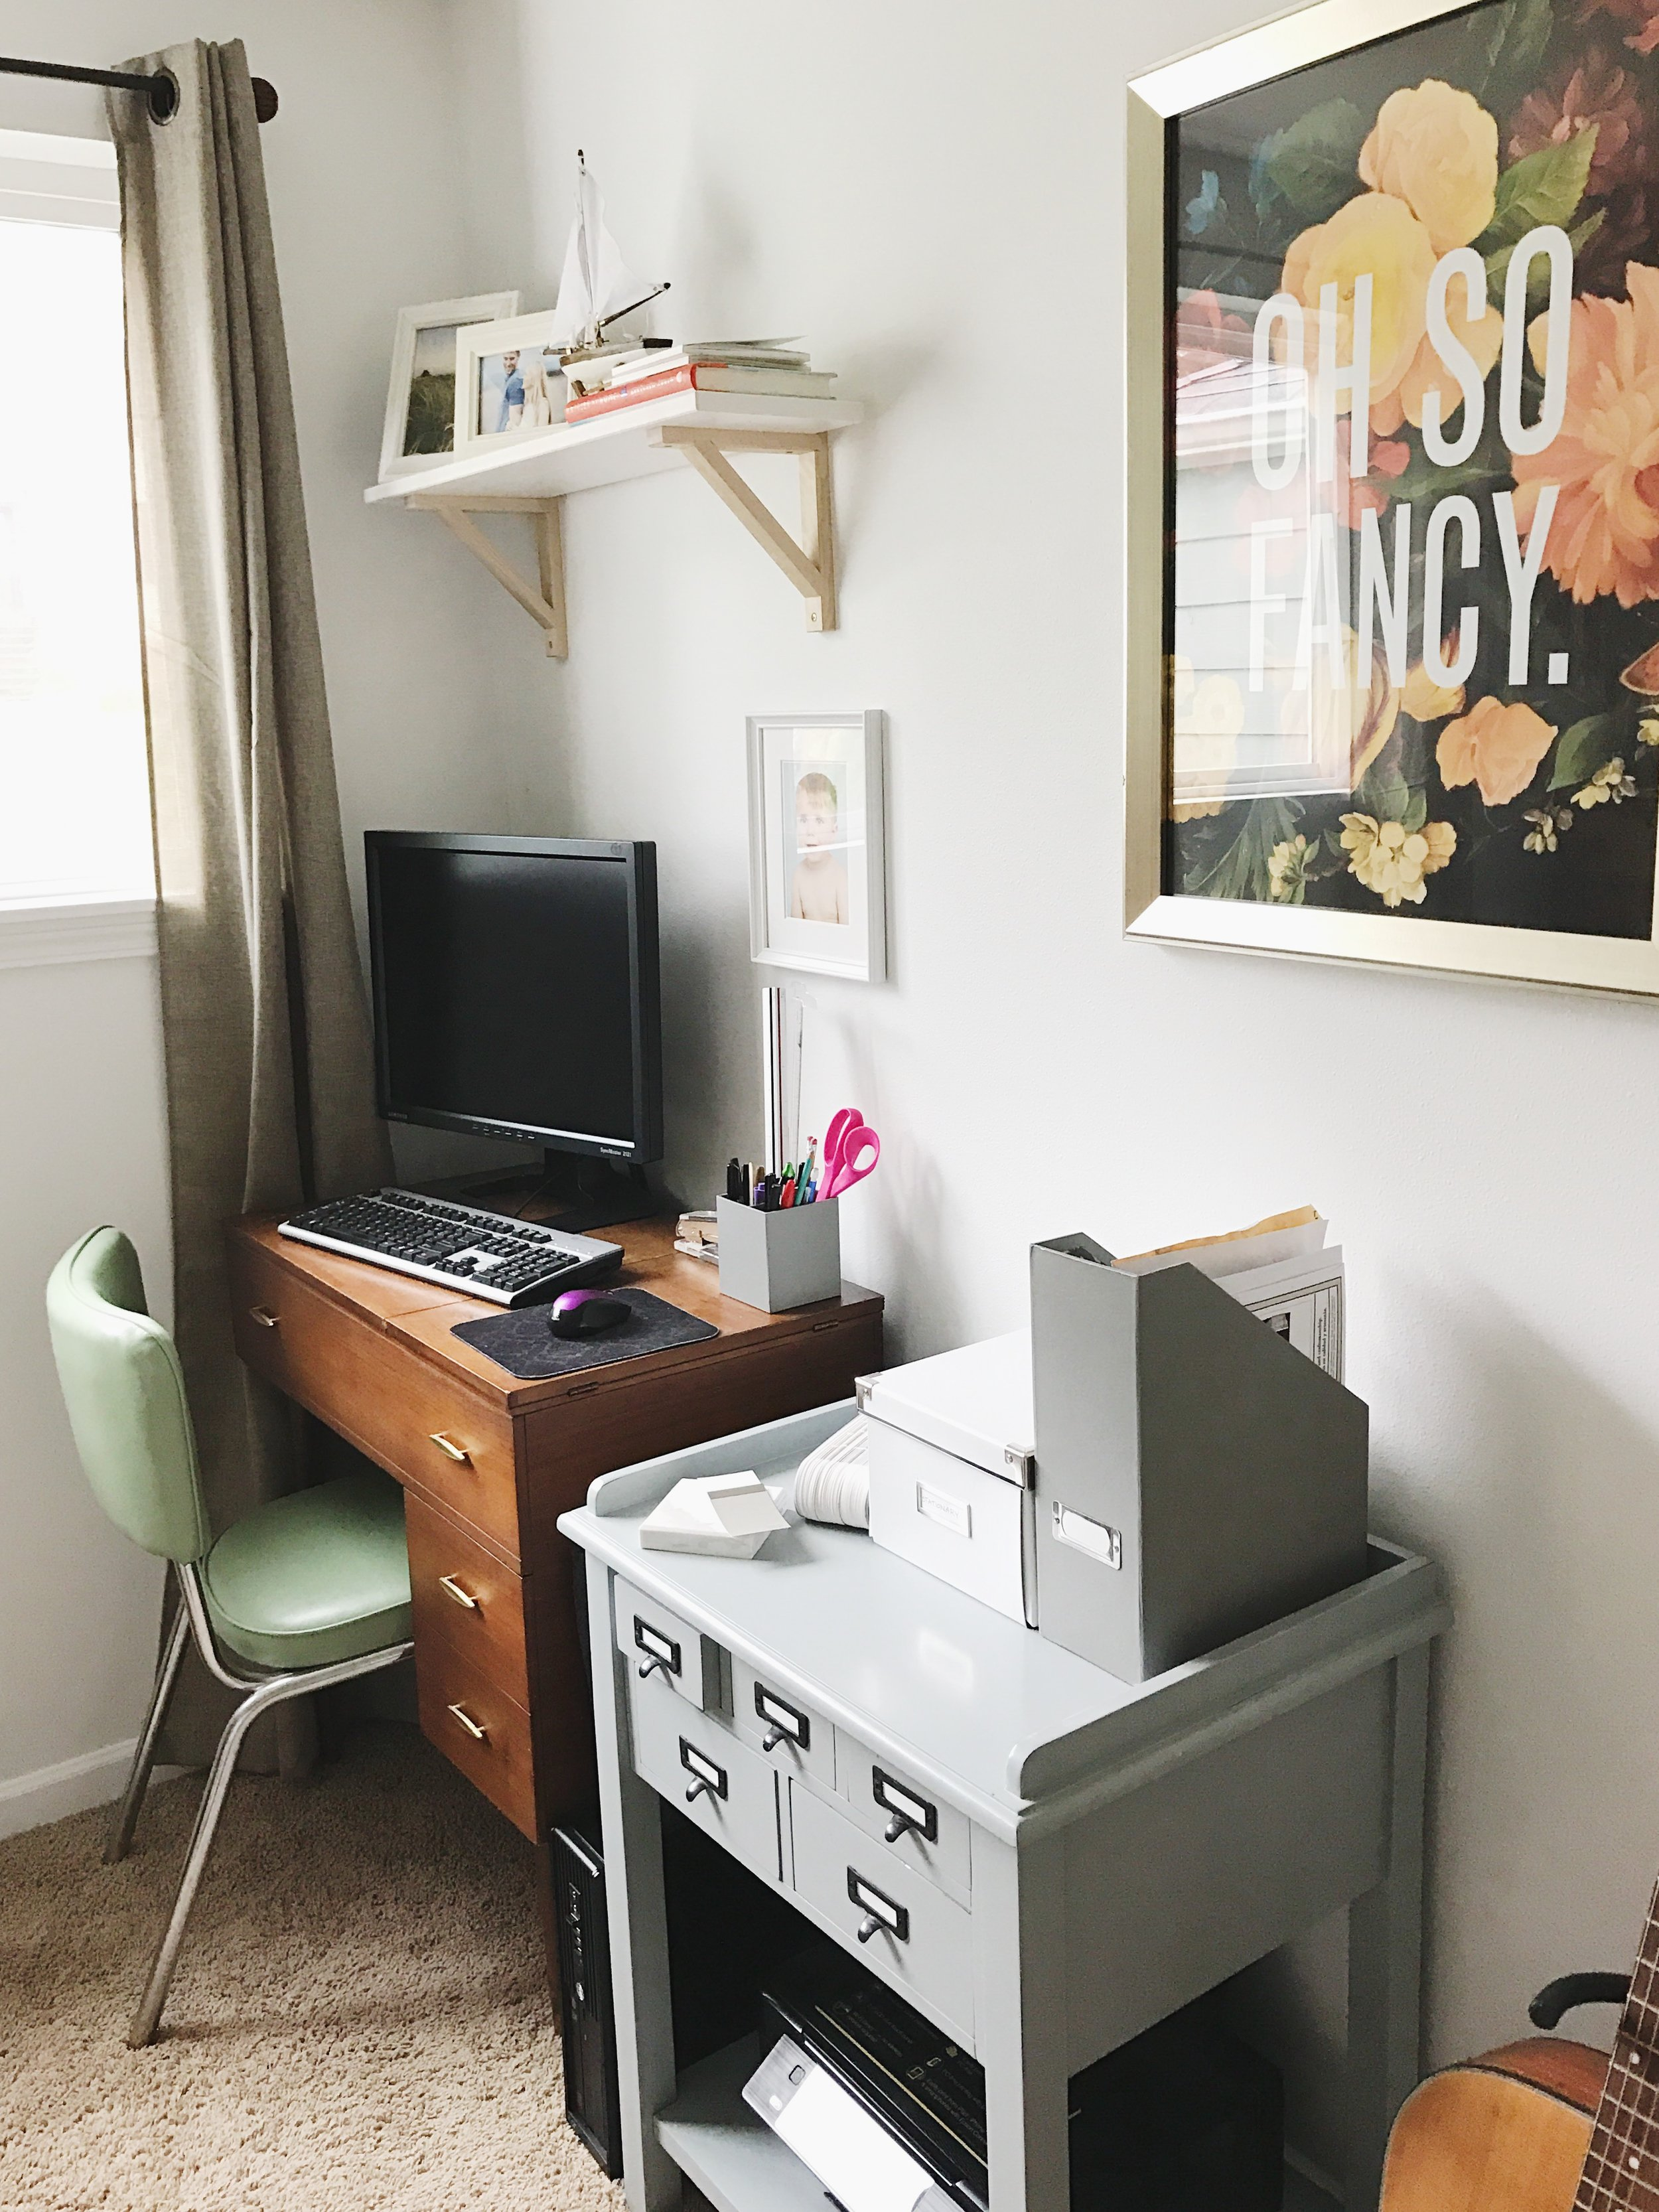 The sewing table is intended to be used as a laptop desk but temporarily for now my old monster drafting desktop has to reside here.